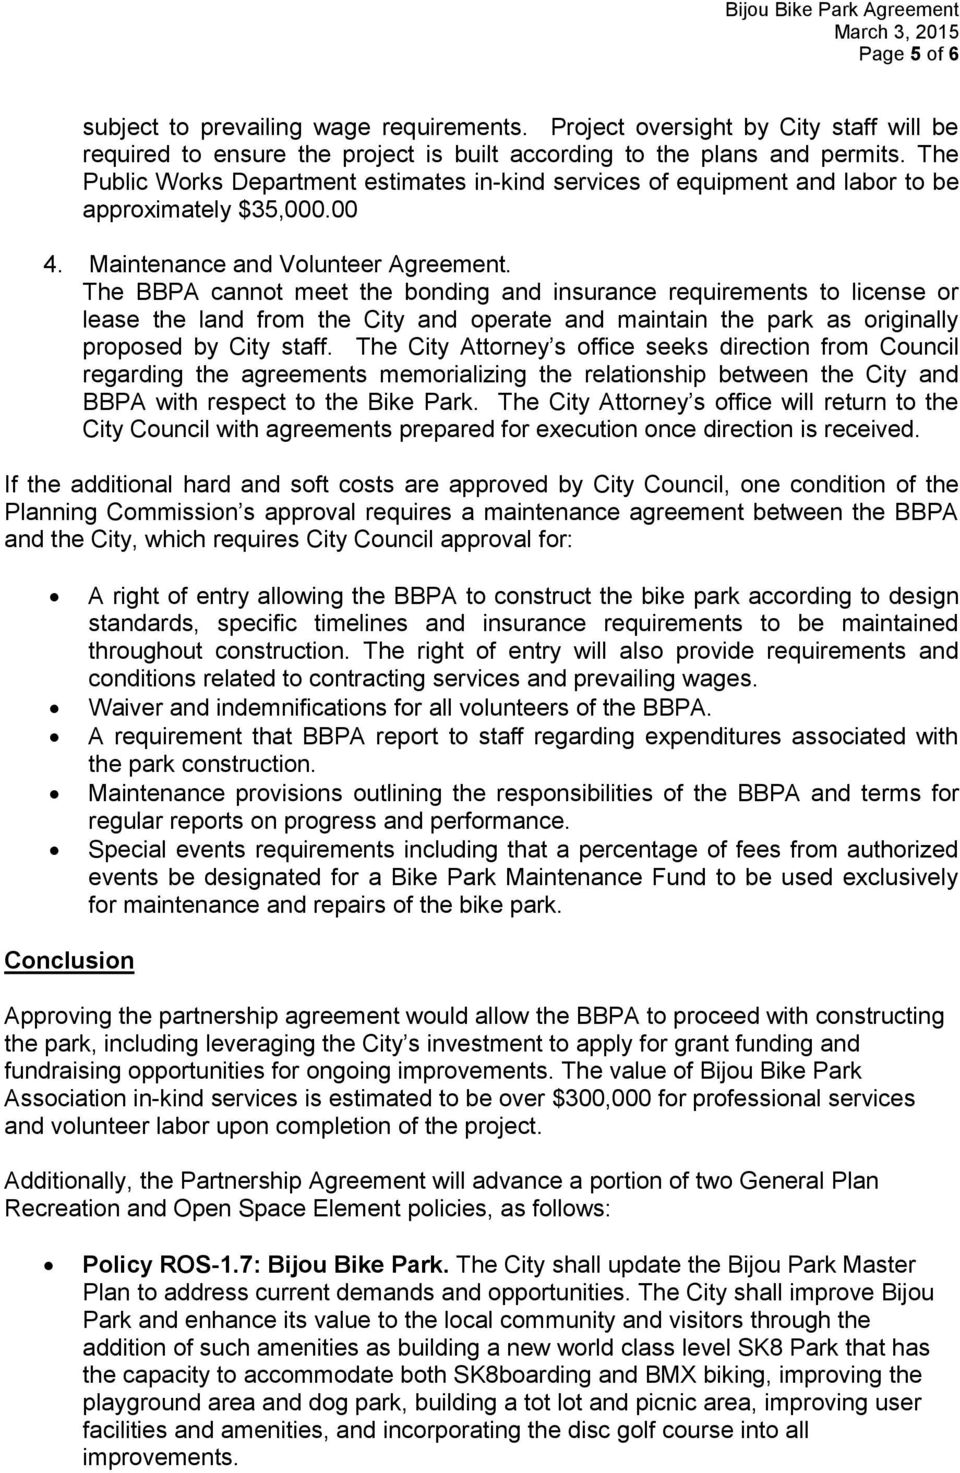 The BBPA cannot meet the bonding and insurance requirements to license or lease the land from the City and operate and maintain the park as originally proposed by City staff.